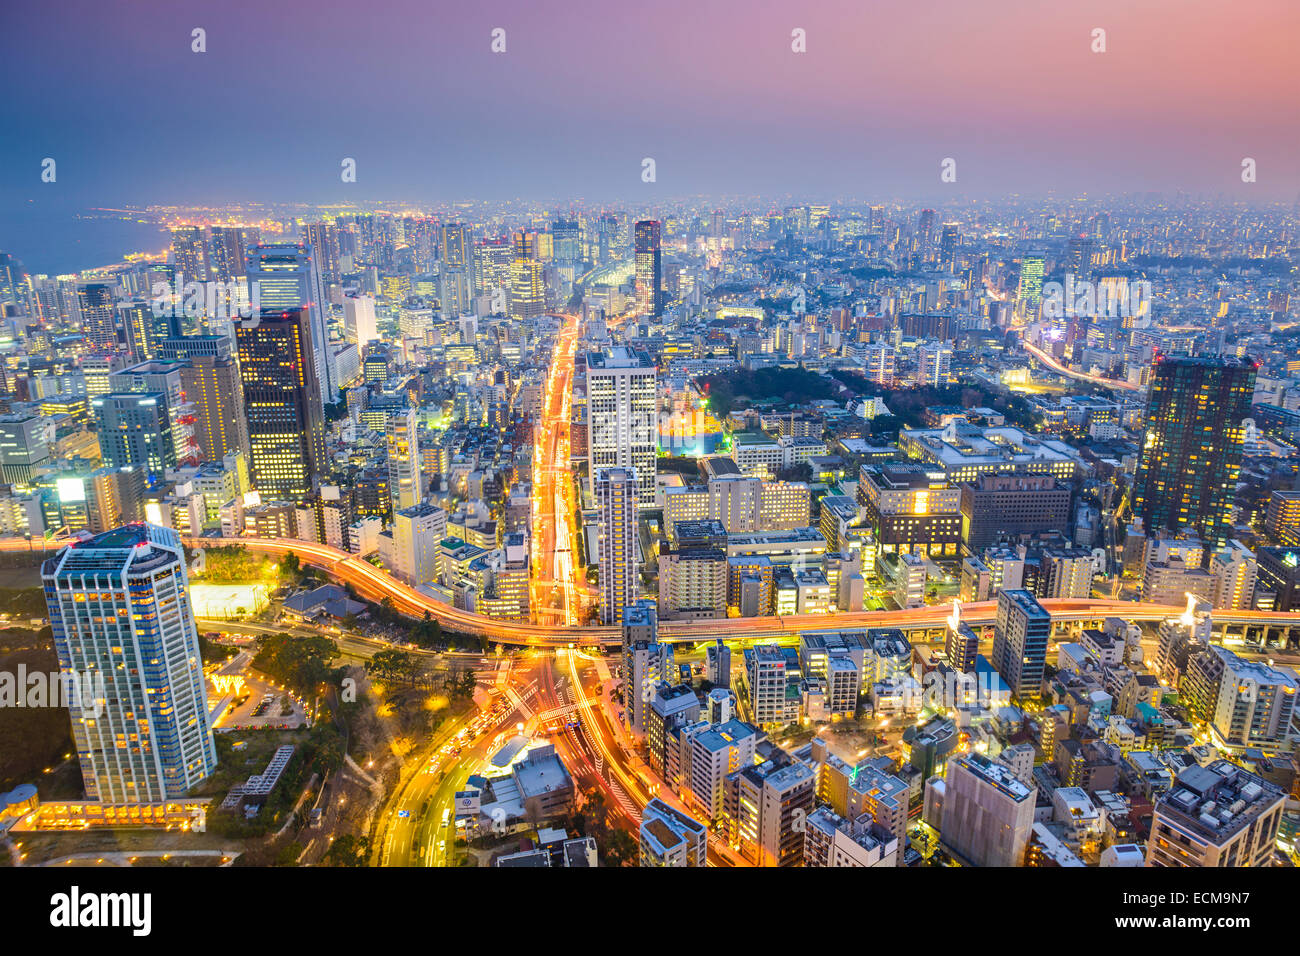 Tokyo, Japan cityscape at dusk above highway junction. Stock Photo